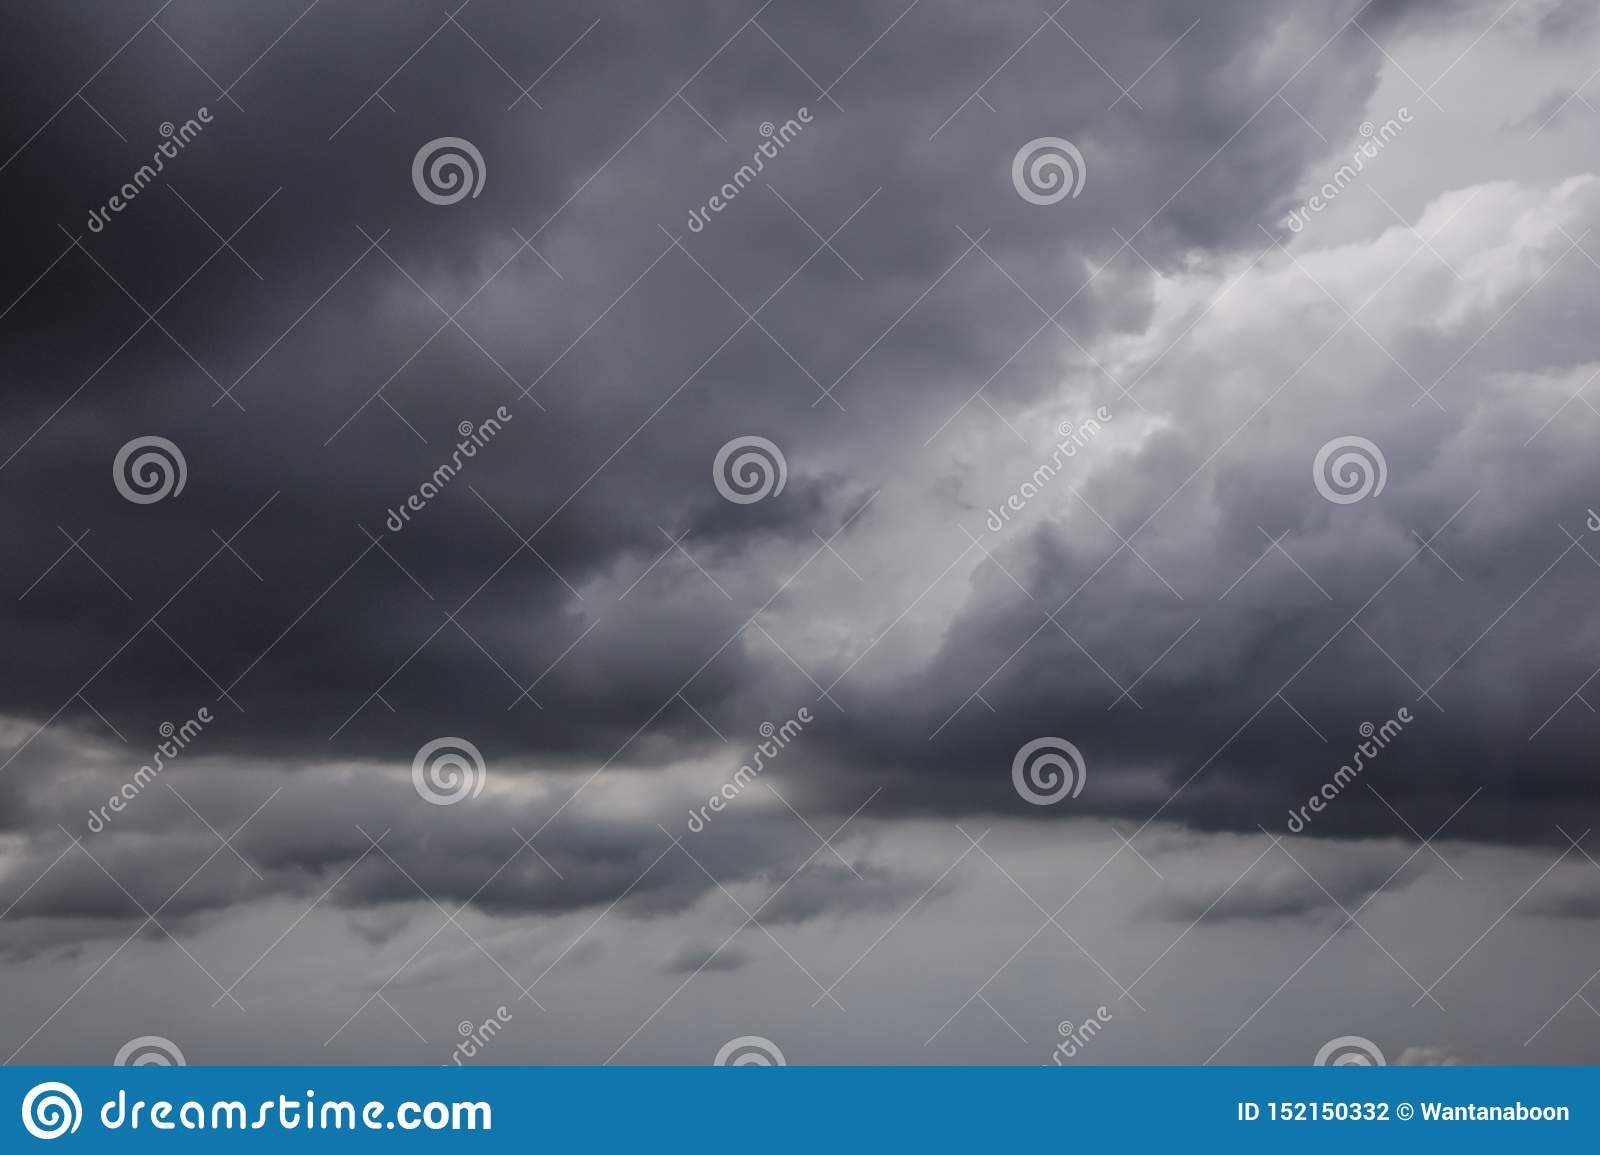 The movement of black clouds before rain, Storm Clouds Area, Black clouds form above the sky before exceeding the storm